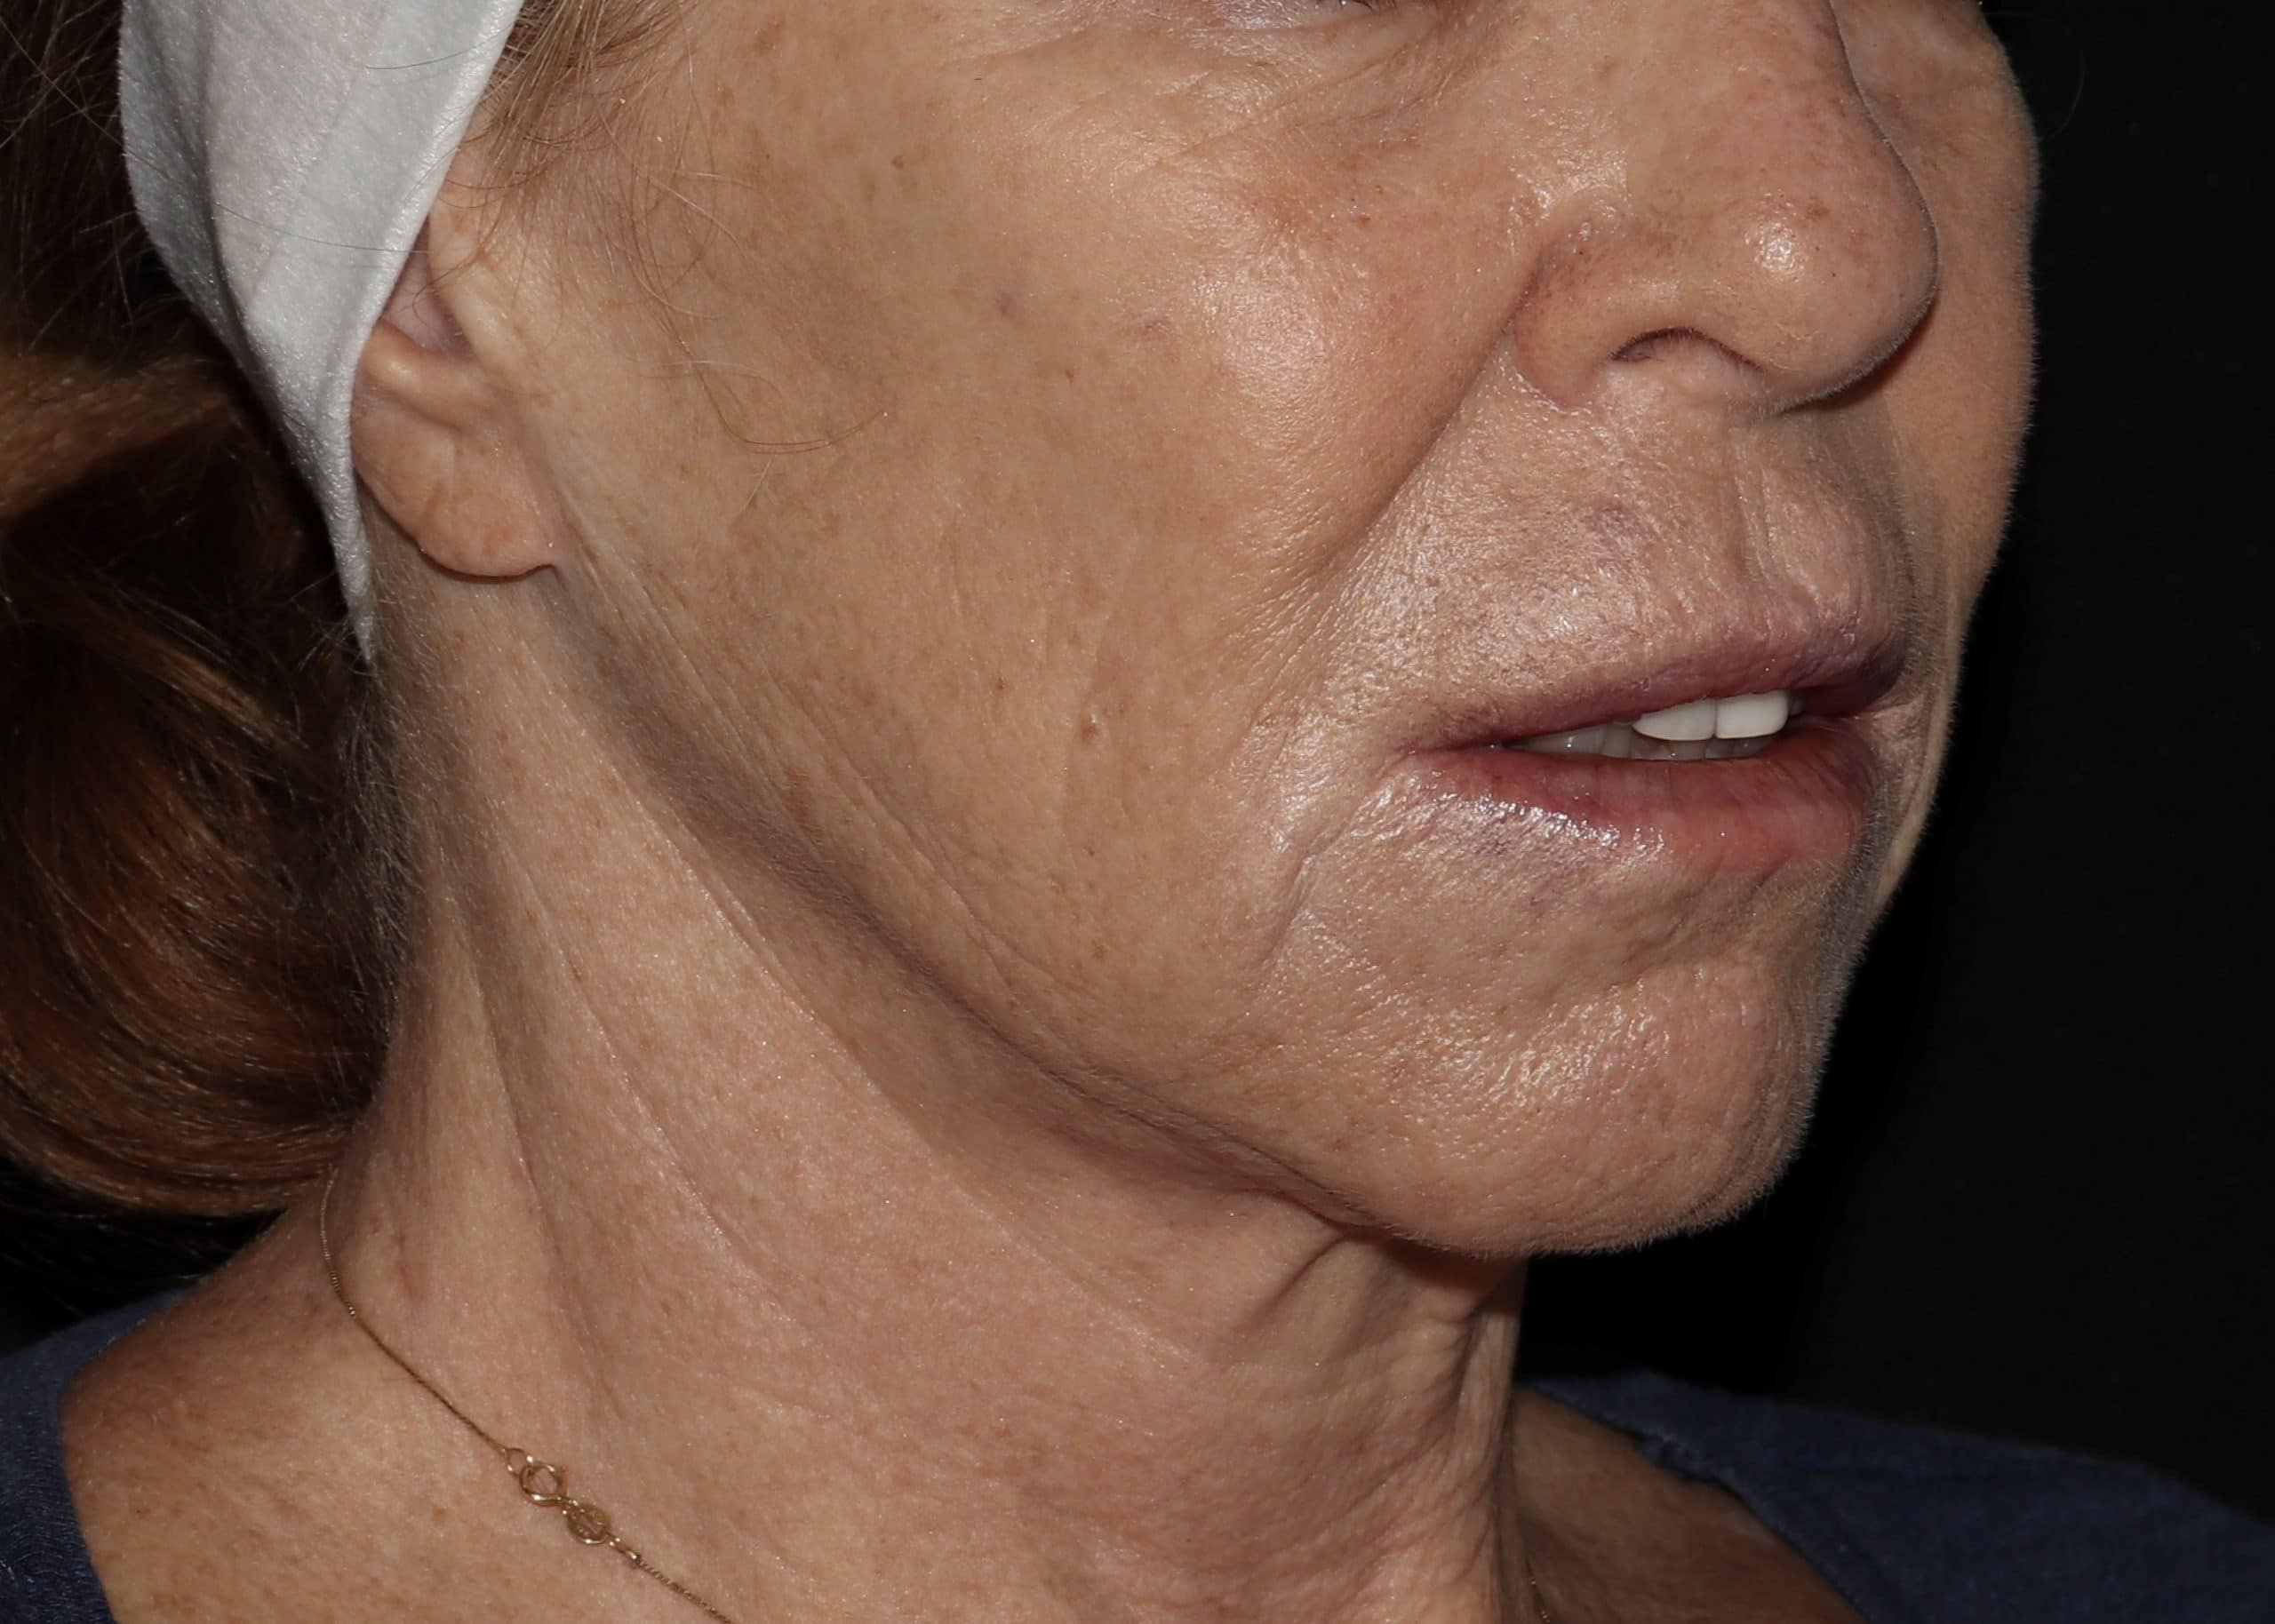 fillers and botox results cr1 scaled 1